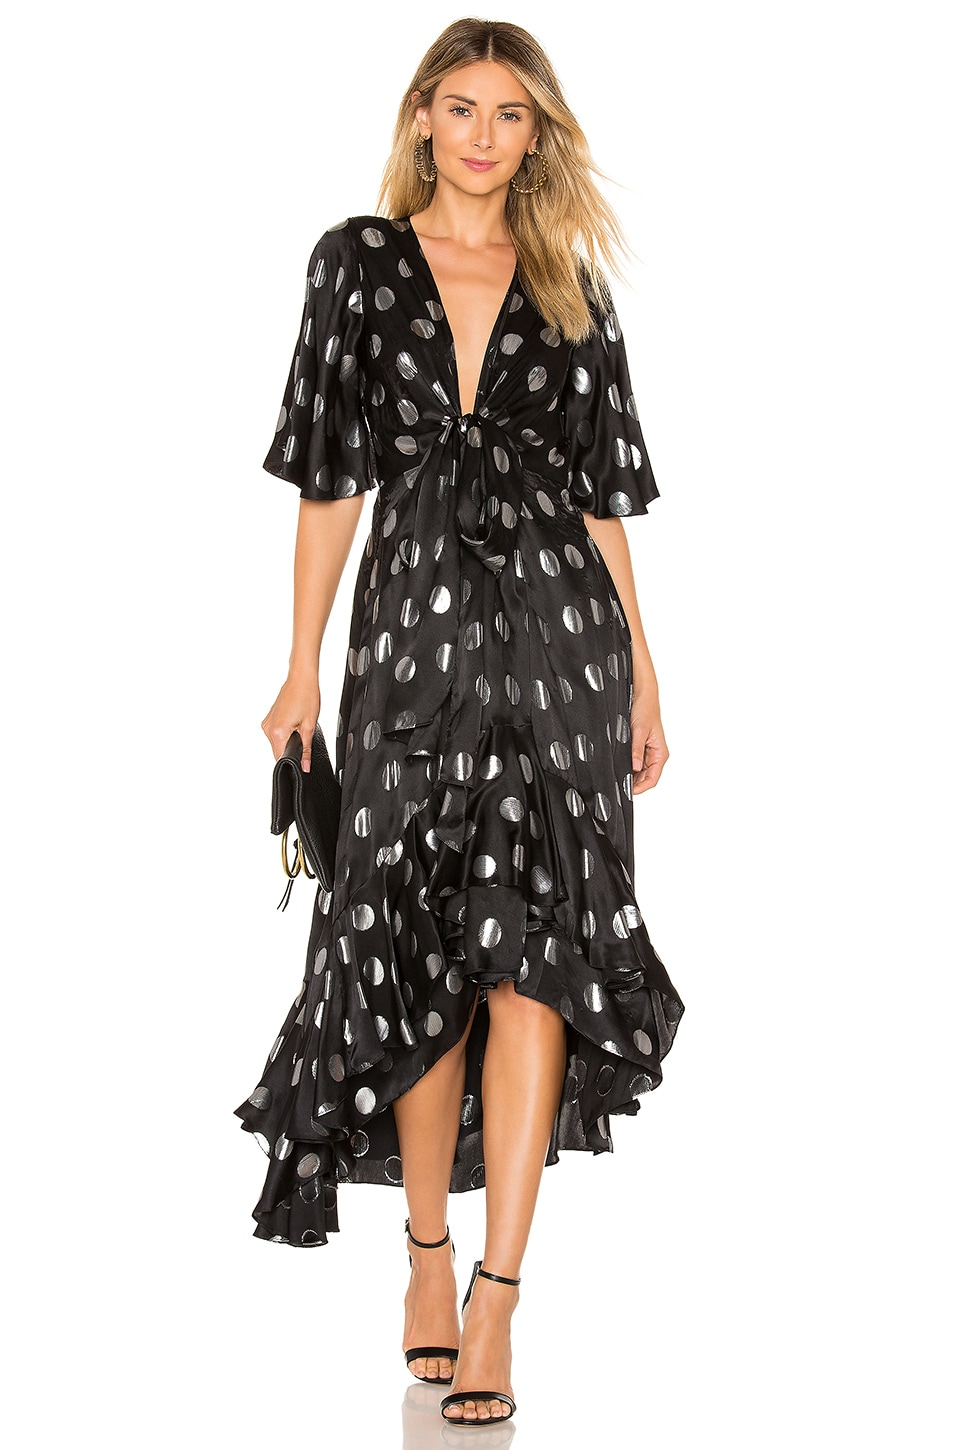 Diane von Furstenberg Sareth Midi Dress in Black and Silver